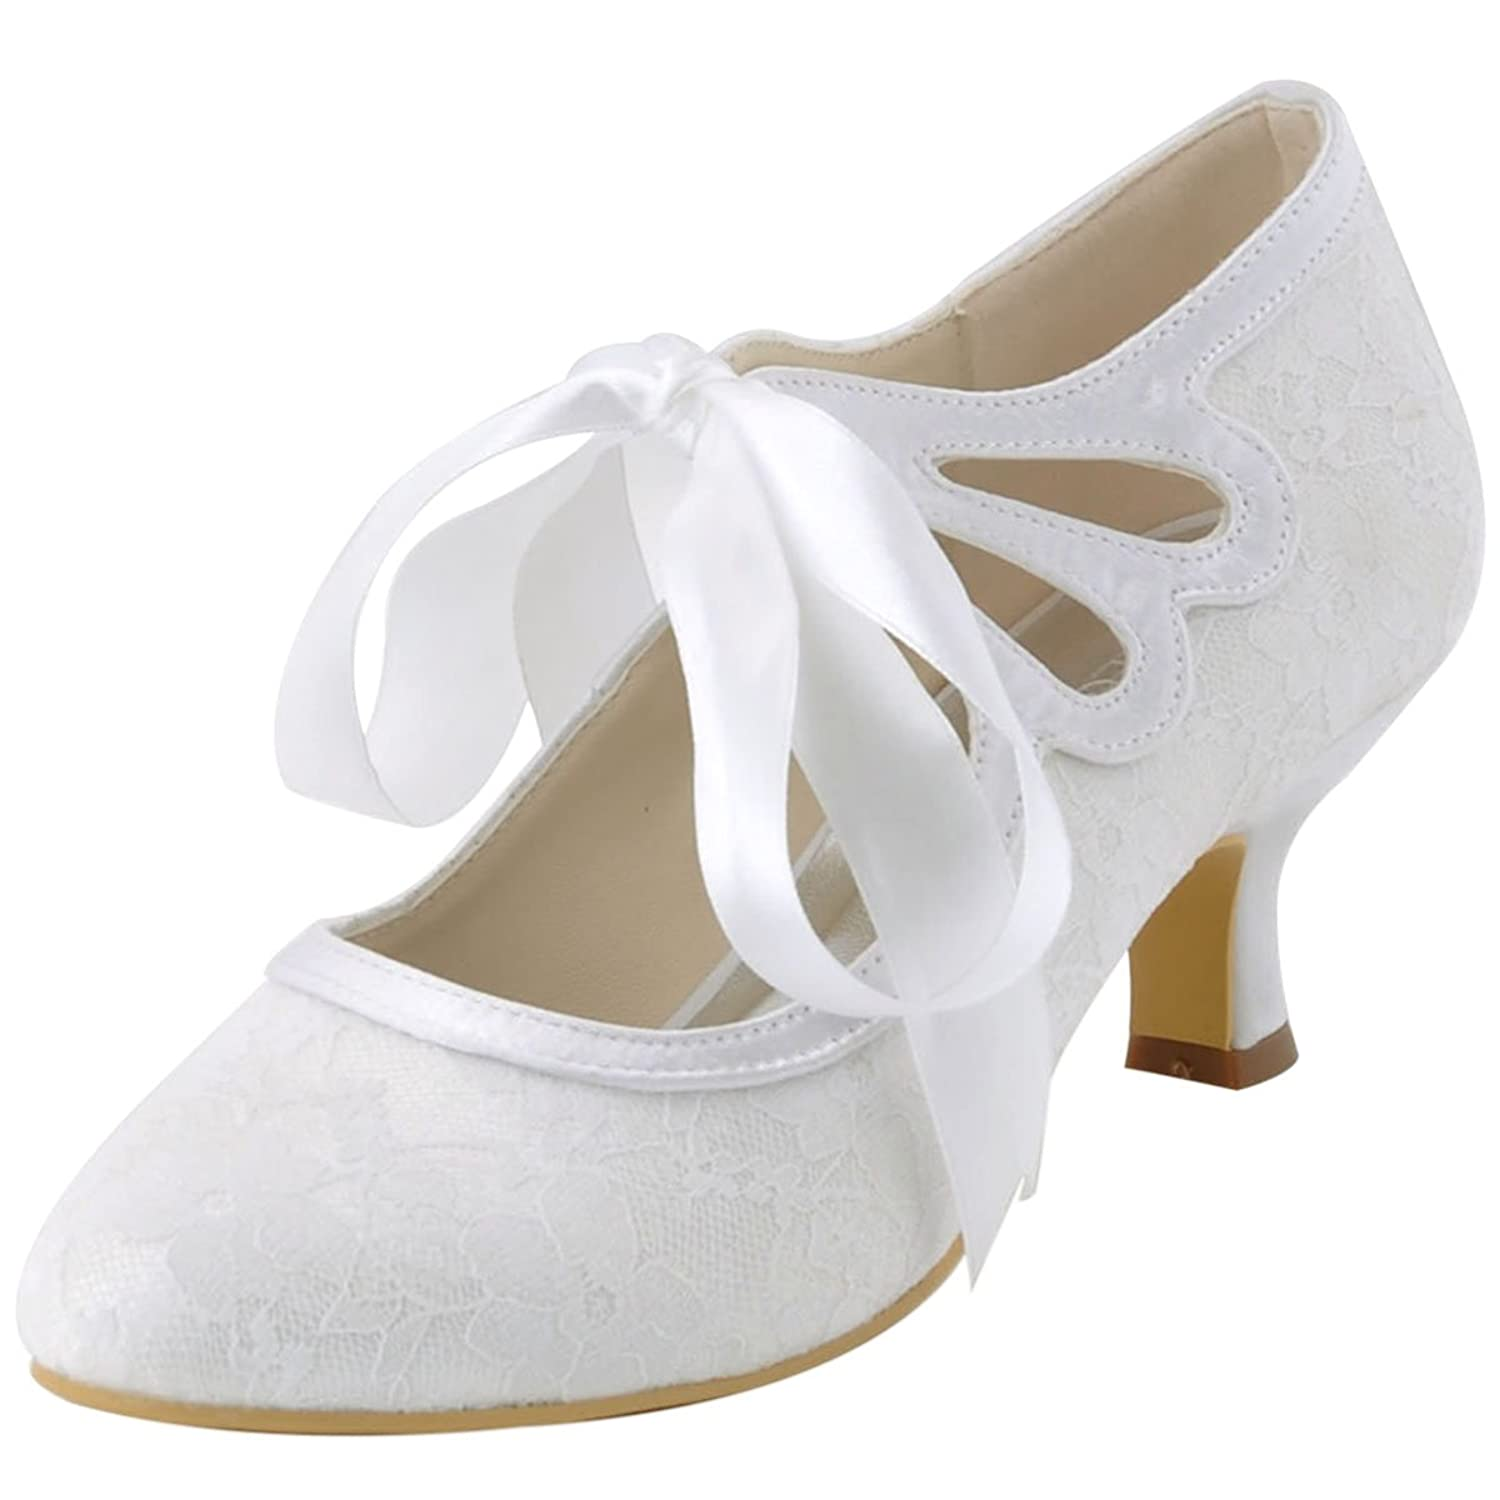 Vintage Inspired Wedding Dresses ElegantPark HC1521 Womens Mary Jane Closed Toe Low Heel Pumps Lace Wedding Dress Shoes $48.95 AT vintagedancer.com